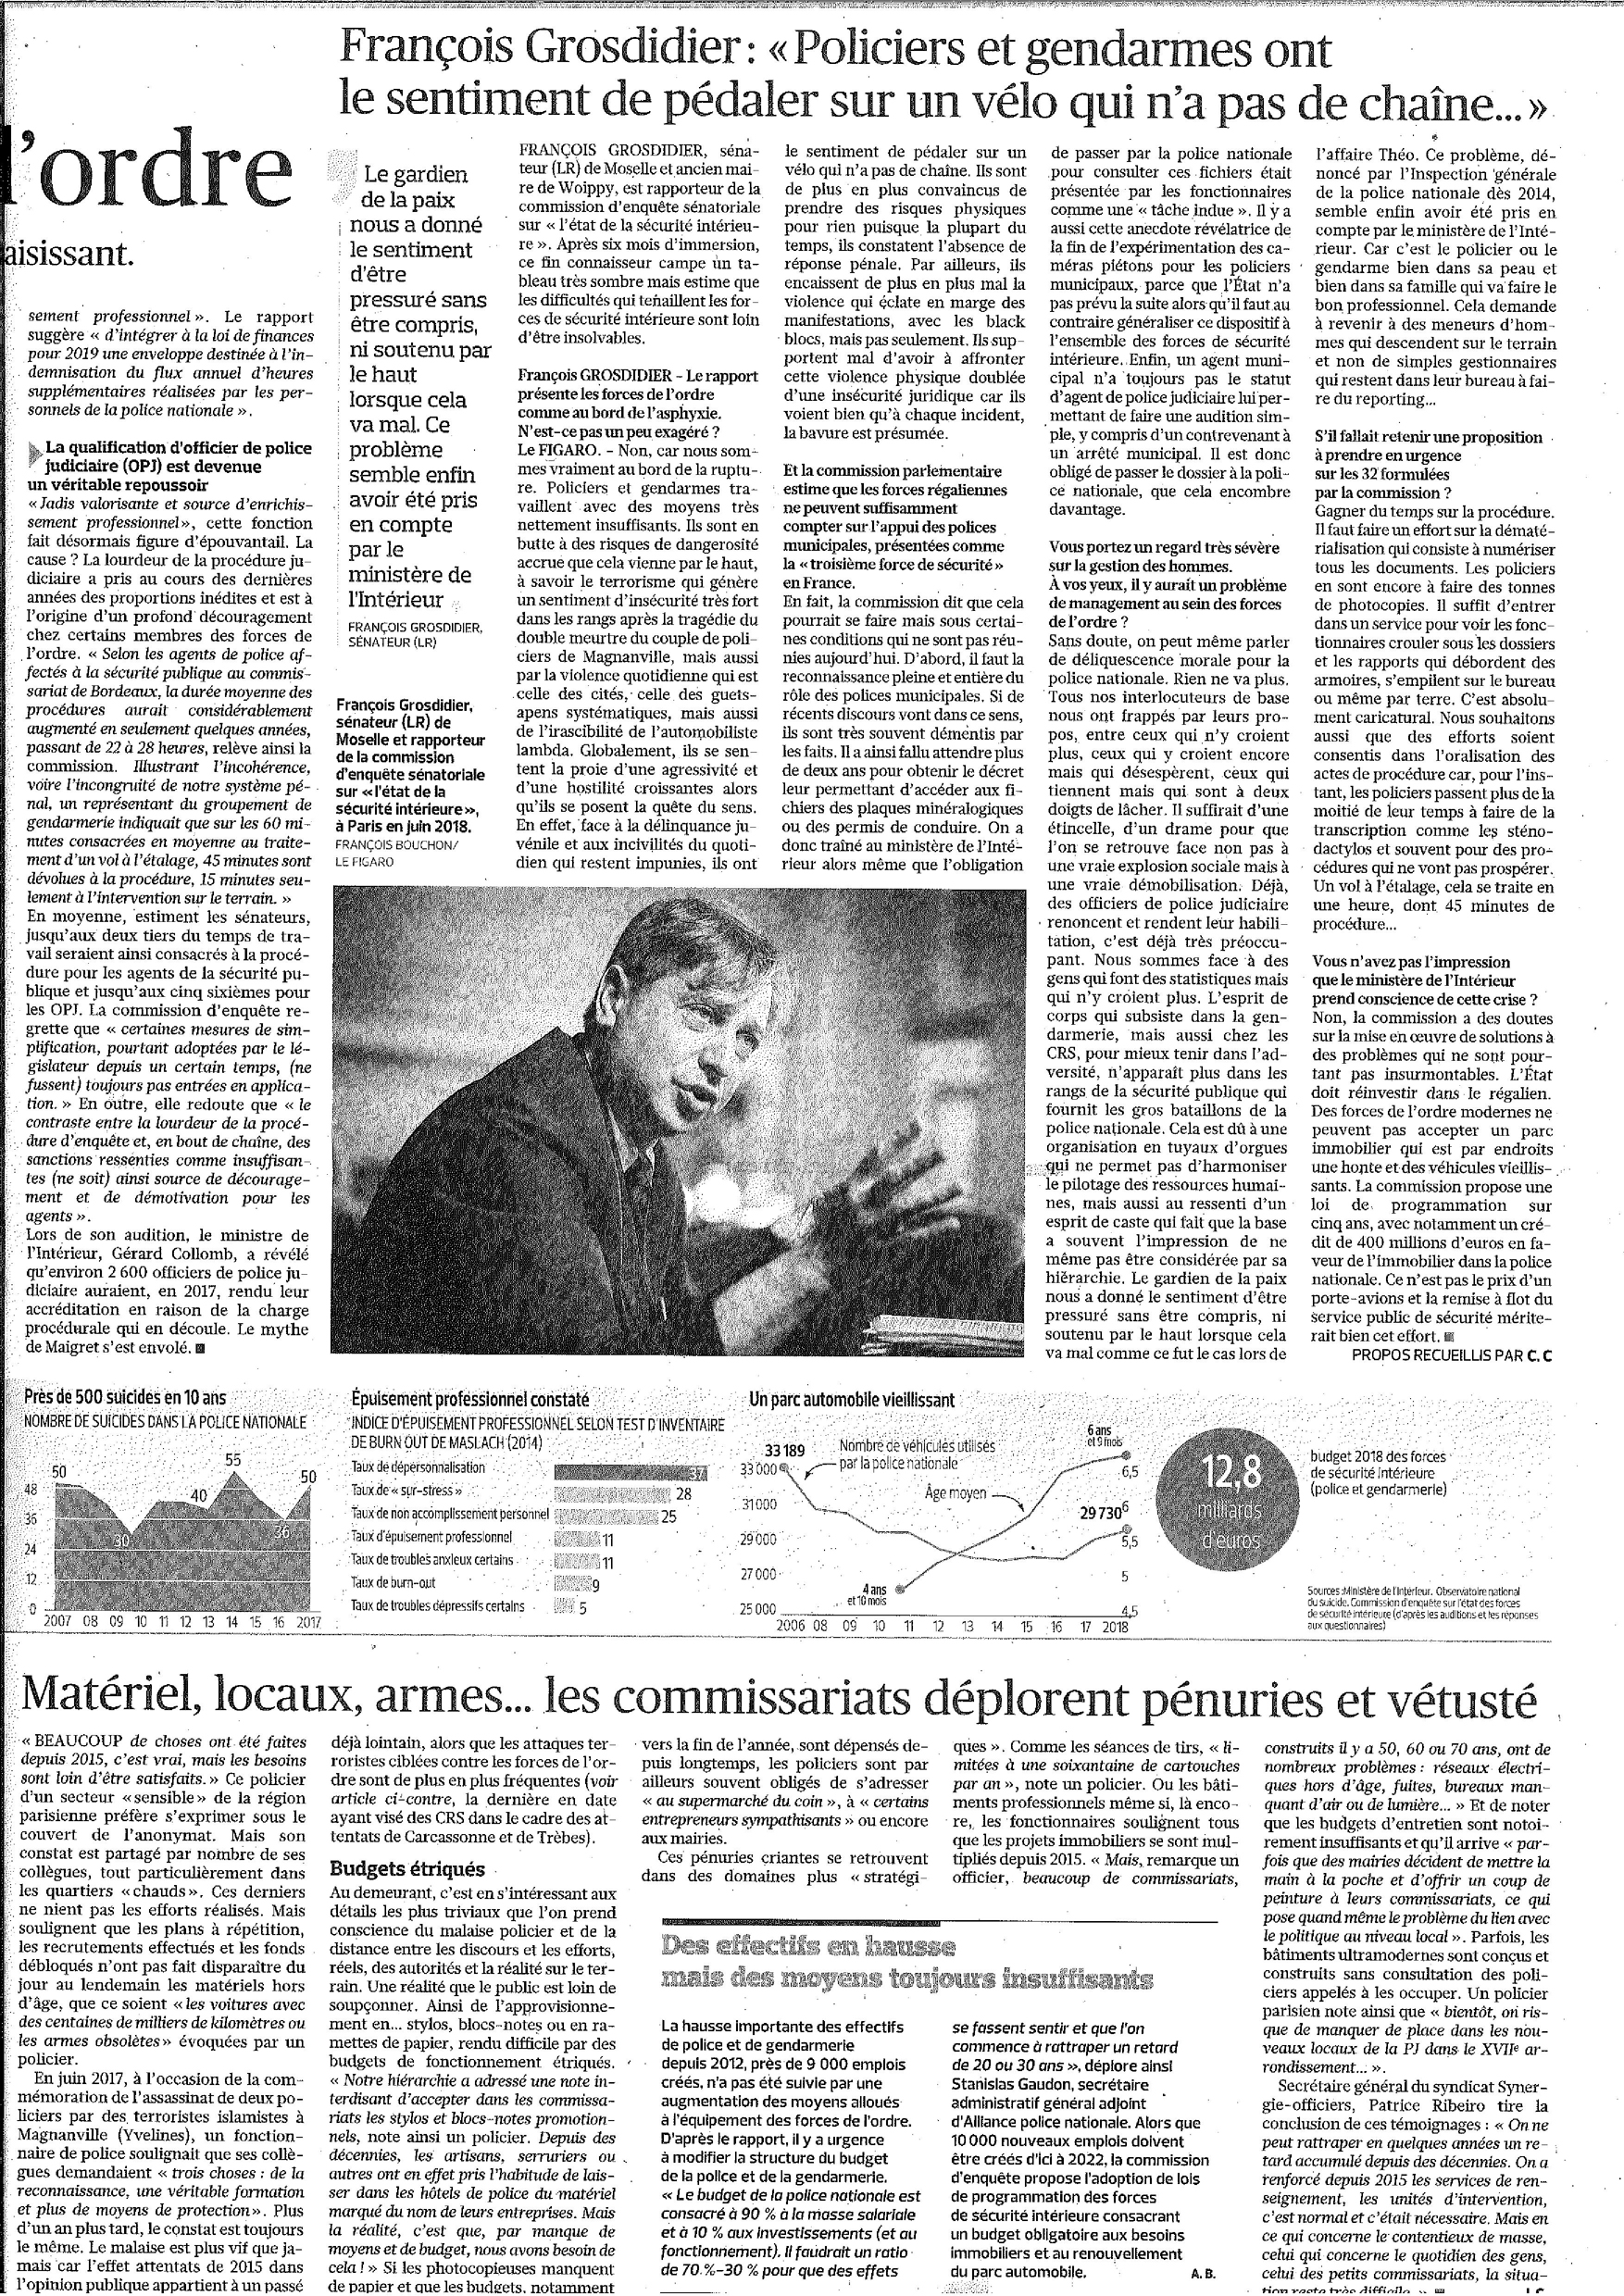 Le Figaro page 2